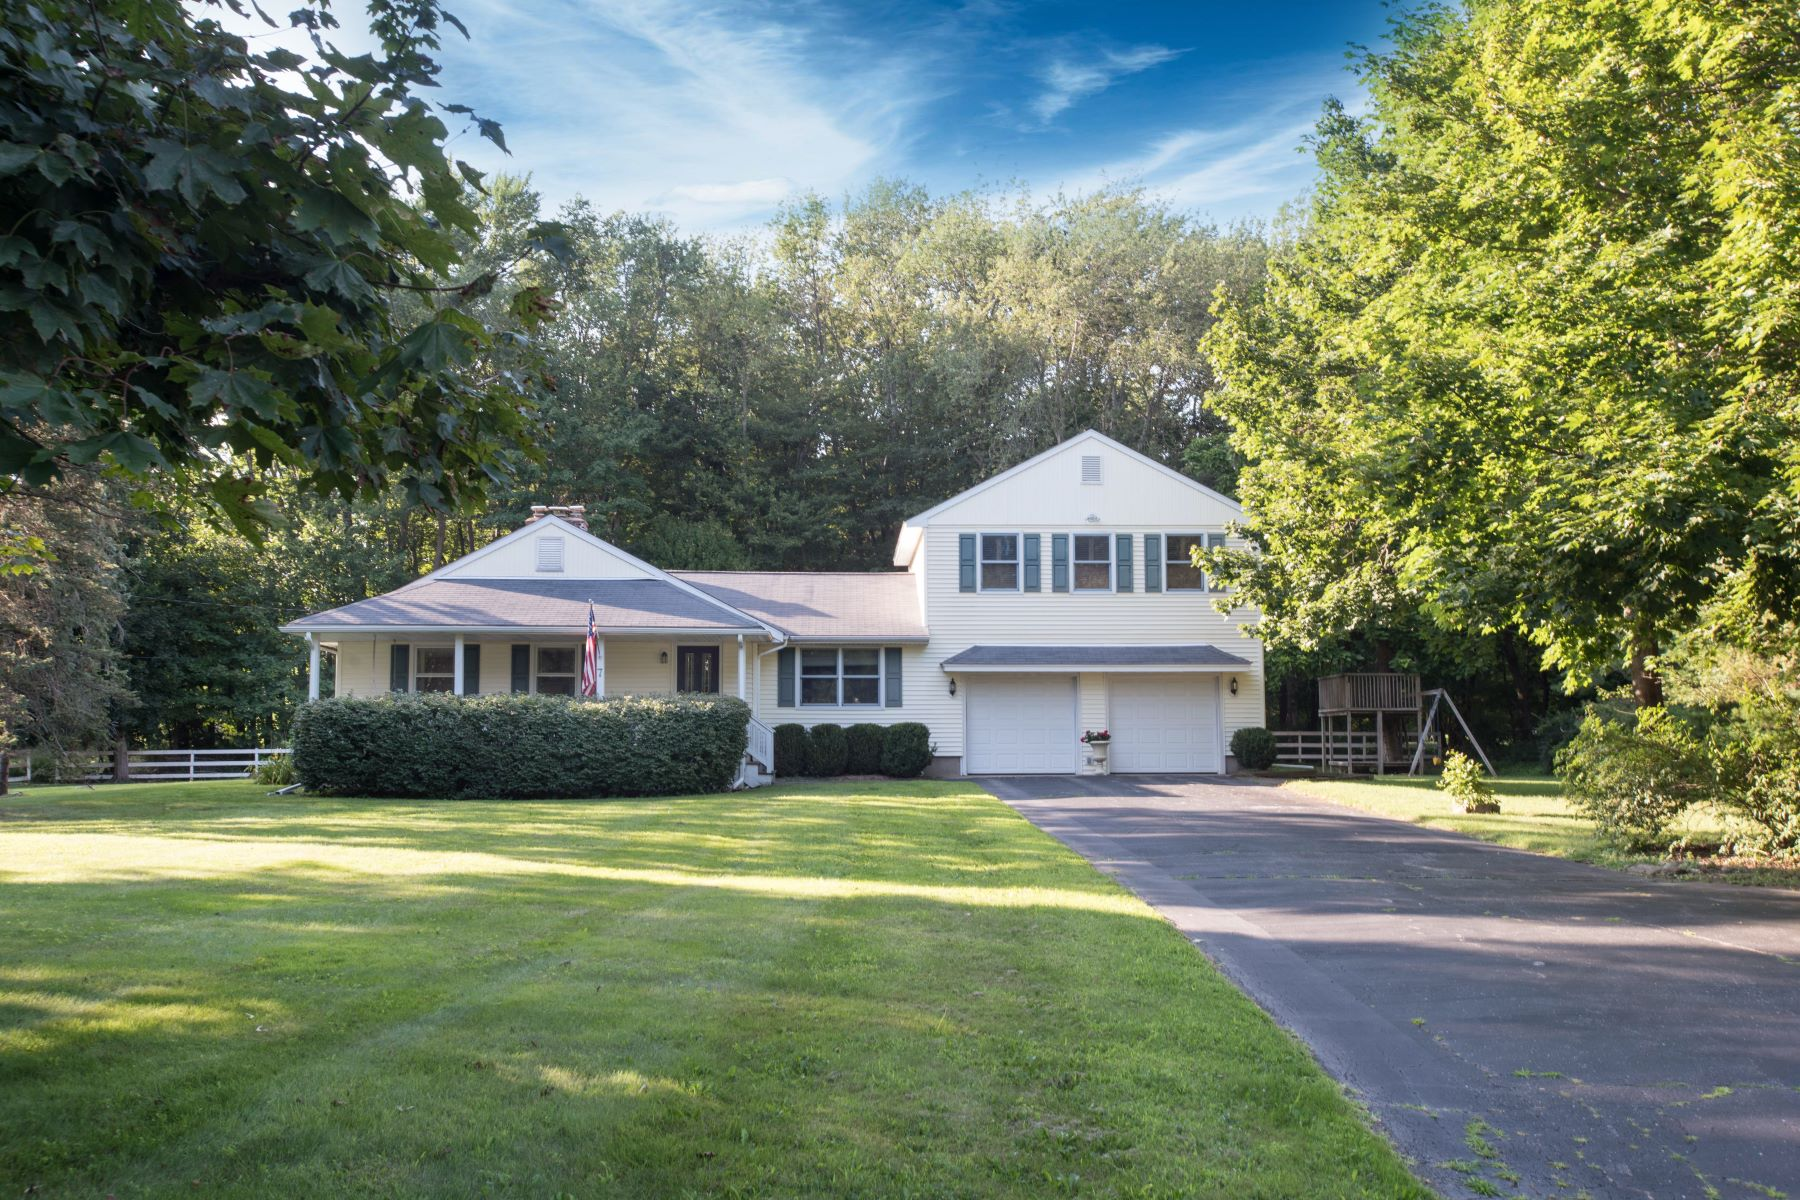 Single Family Home for Sale at 7 Amante Drive 7 Amante Drive Easton, Connecticut 06612 United States